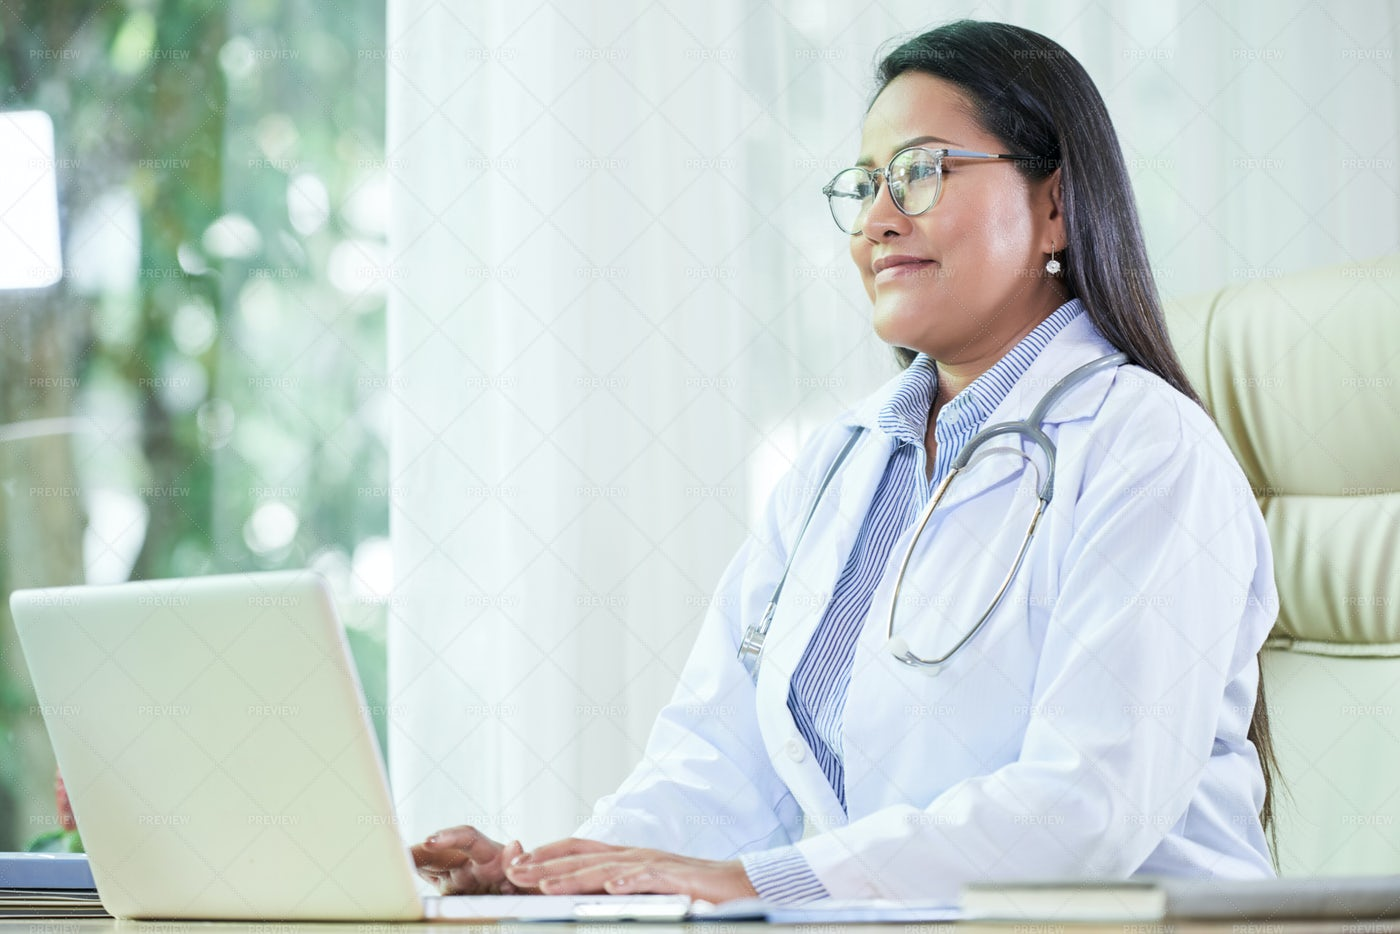 Positive Doctor Working On Laptop: Stock Photos